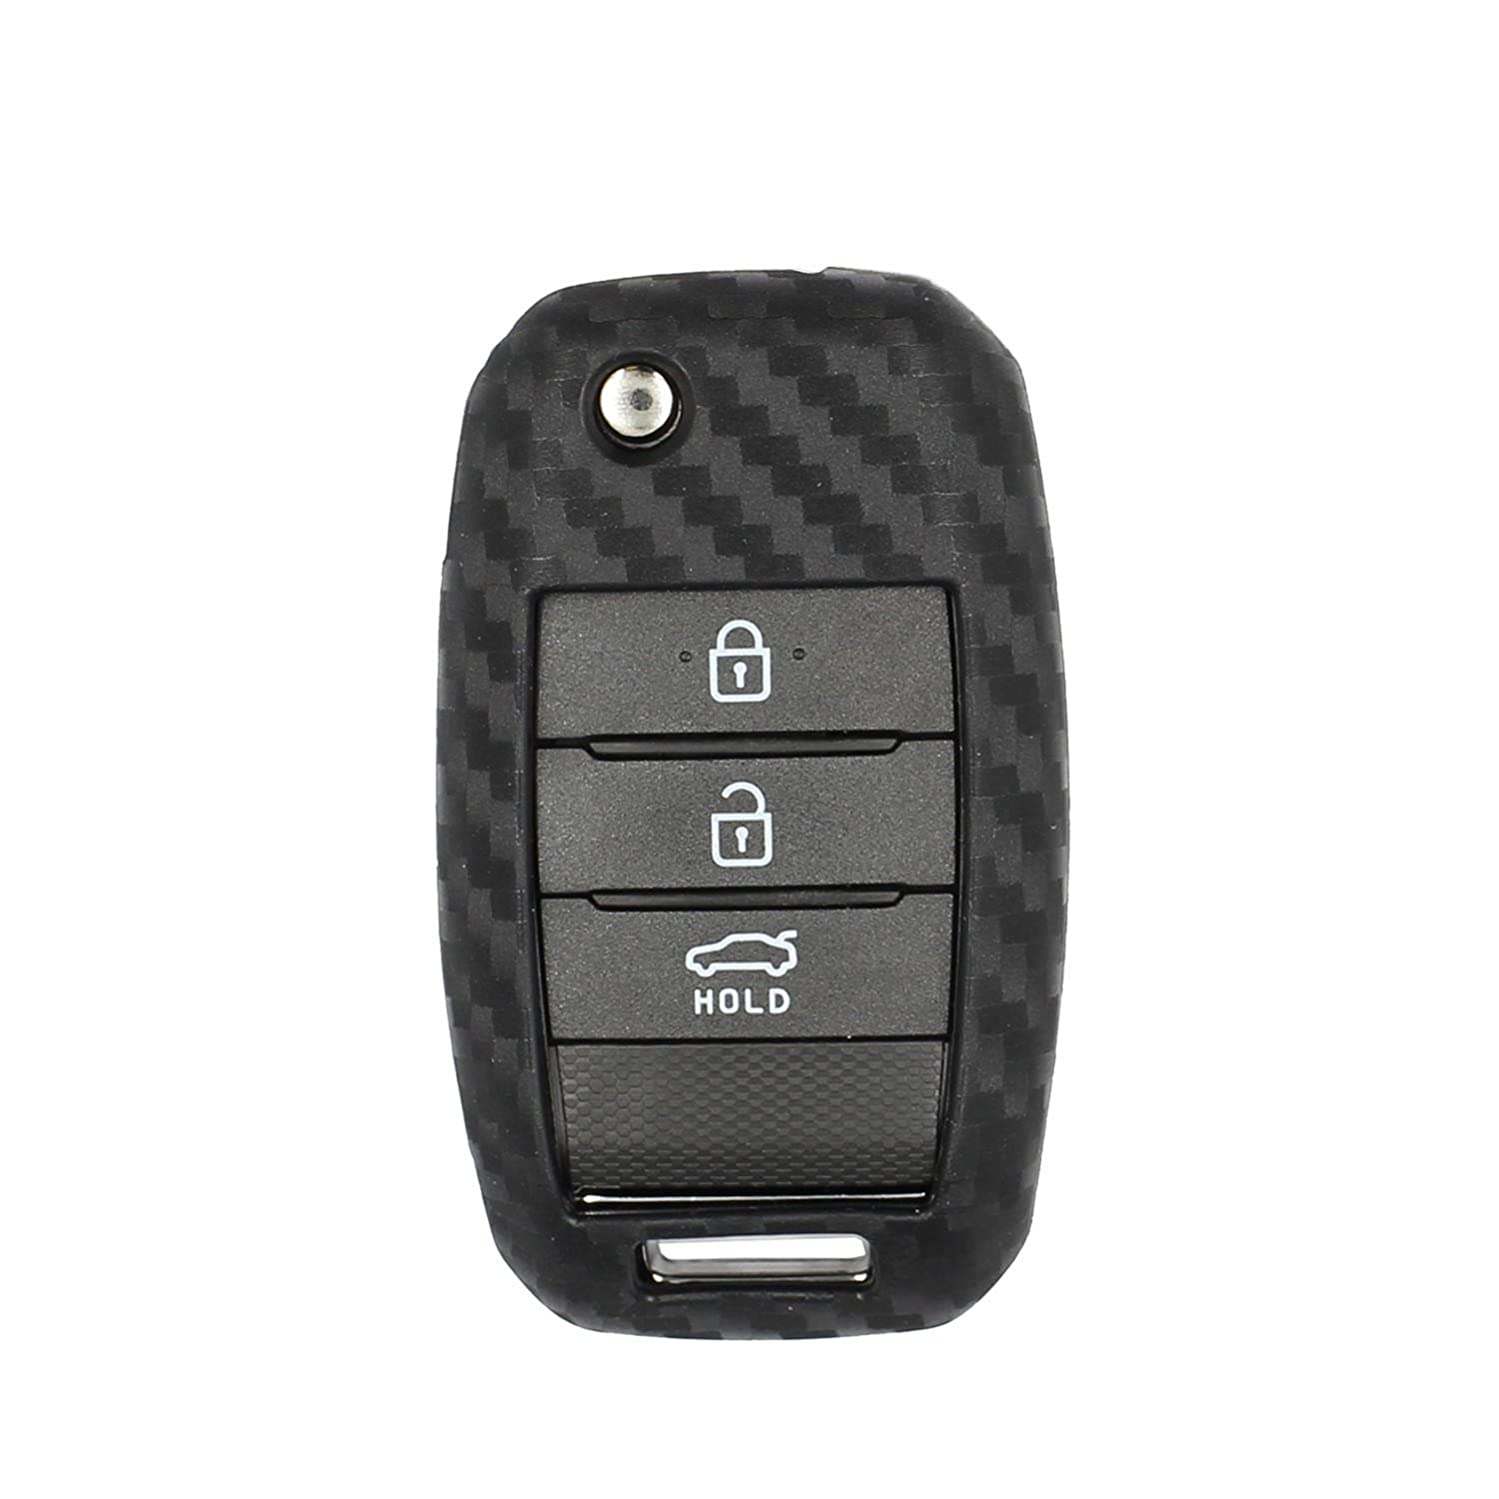 M.JVisun Soft Silicone Rubber with Carbon Fiber Texture Pattern Skin Cover Protector for KIA 2/3/4 Buttons Flip Key Fob, Car Keyless Entry Remote Key Fob Case for KIA K2 K3 K5 Sportage R - Black